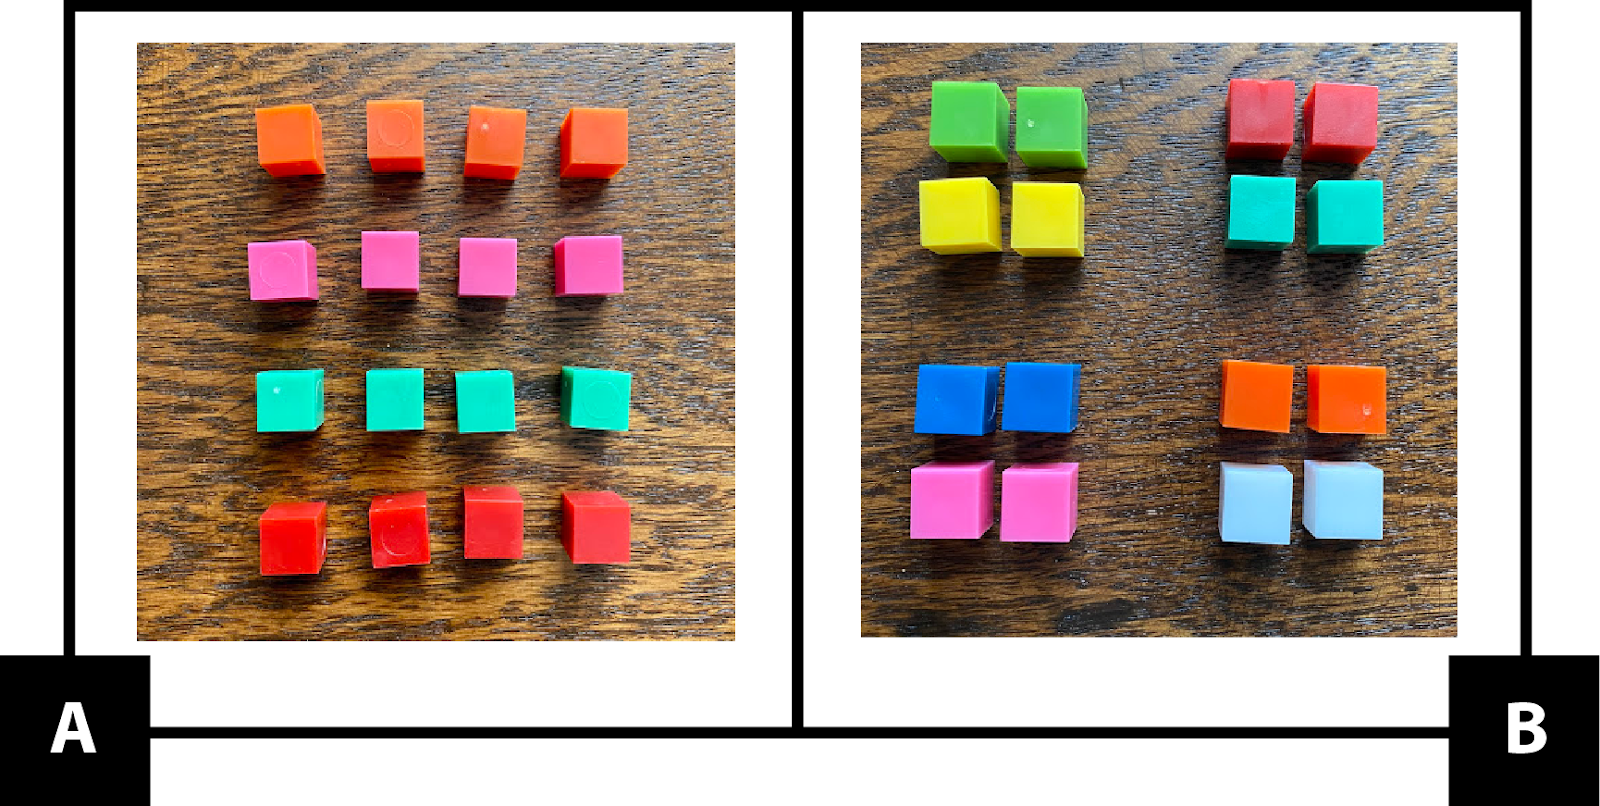 A. shows 4 rows of 4 cubes. Each row has 1 color of cubes and each row is a different color. That's 4 colors of cubes. The cubes make 1 large square. B. shows 4 sets of 4 cubes. Each set makes a small square and the 4 sets together make a big square. Each set has 2 cubes of one color and 2 cubes of another color. Each color is different. That's 8 colors of cubes.